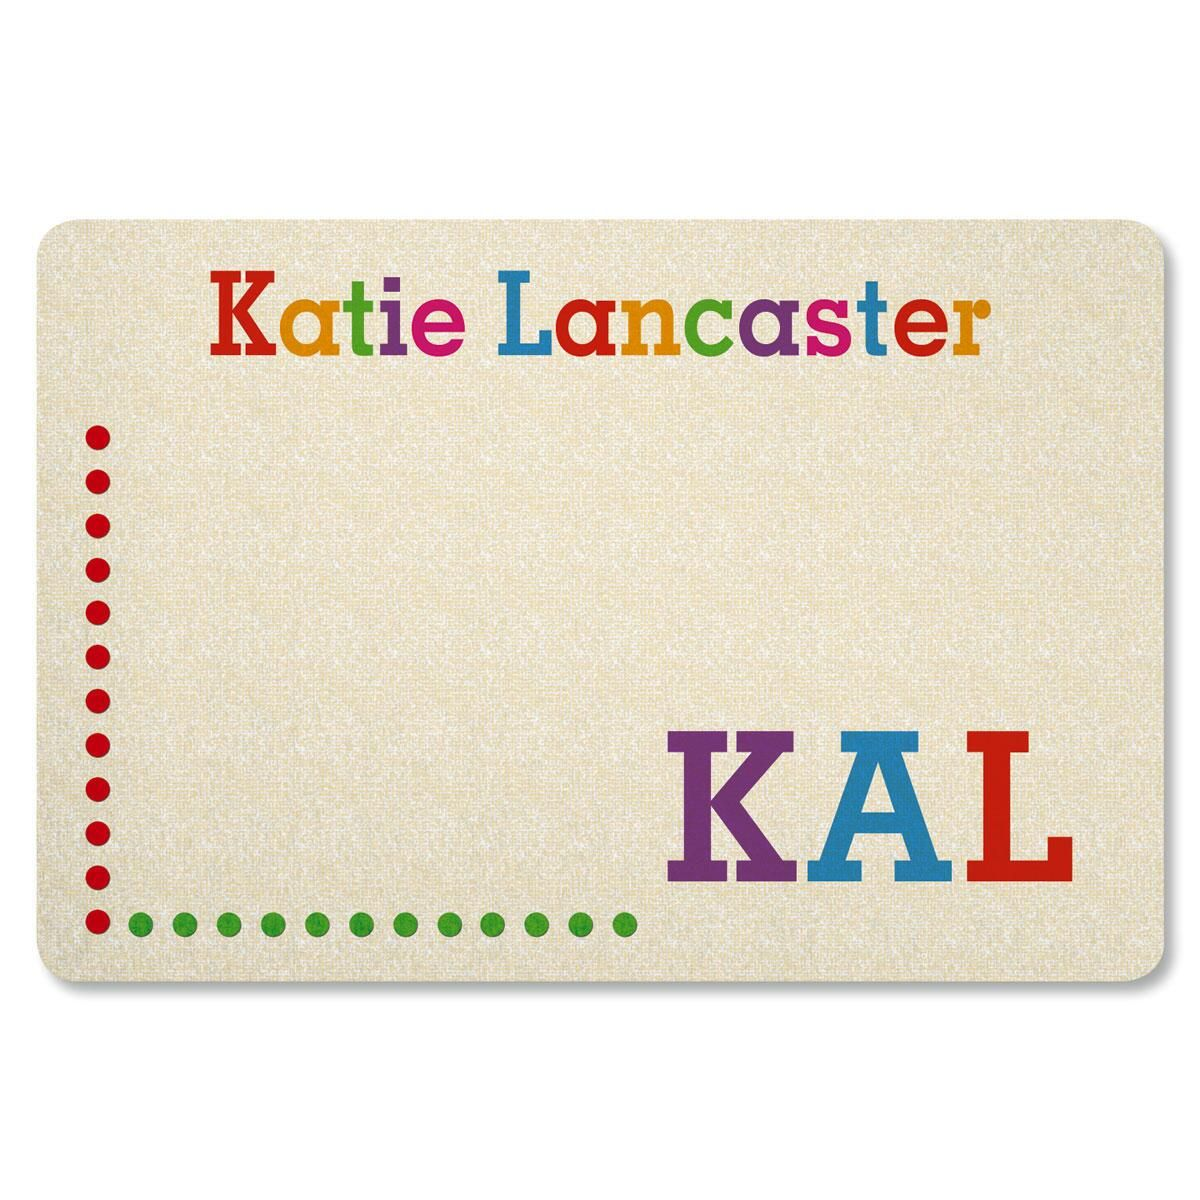 Whimsical Name Personalized Doormat